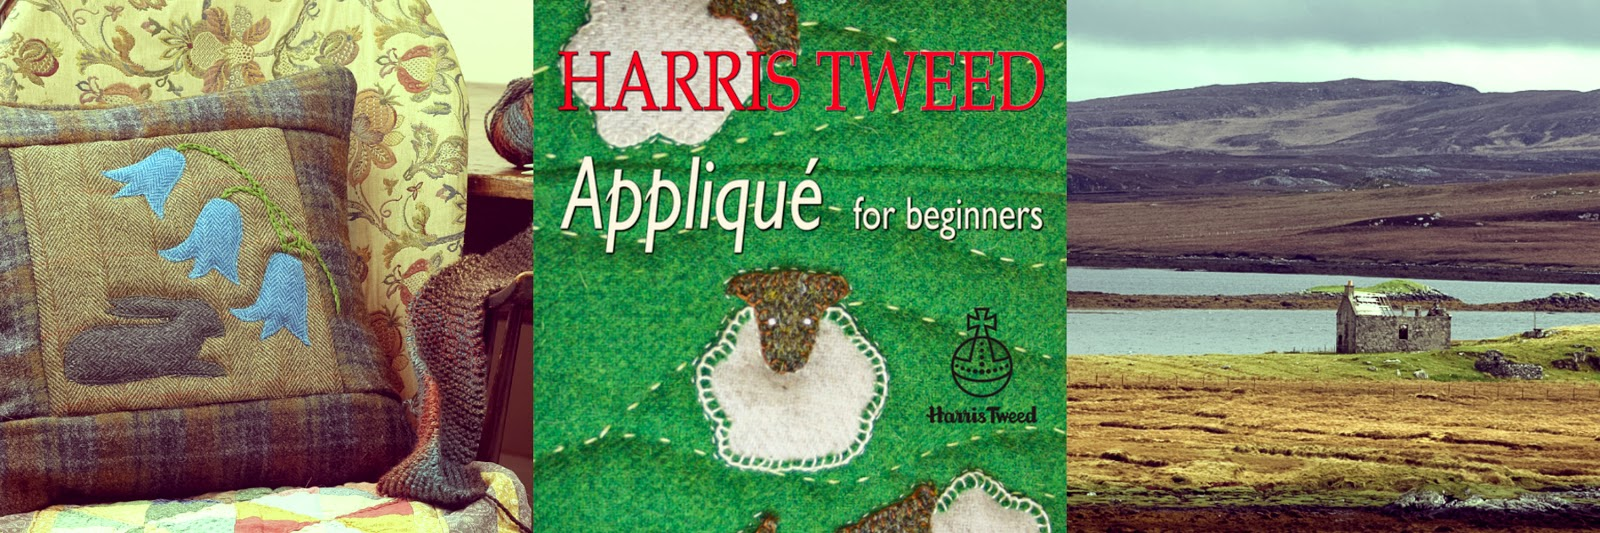 Harris Tweed Applique for beginners